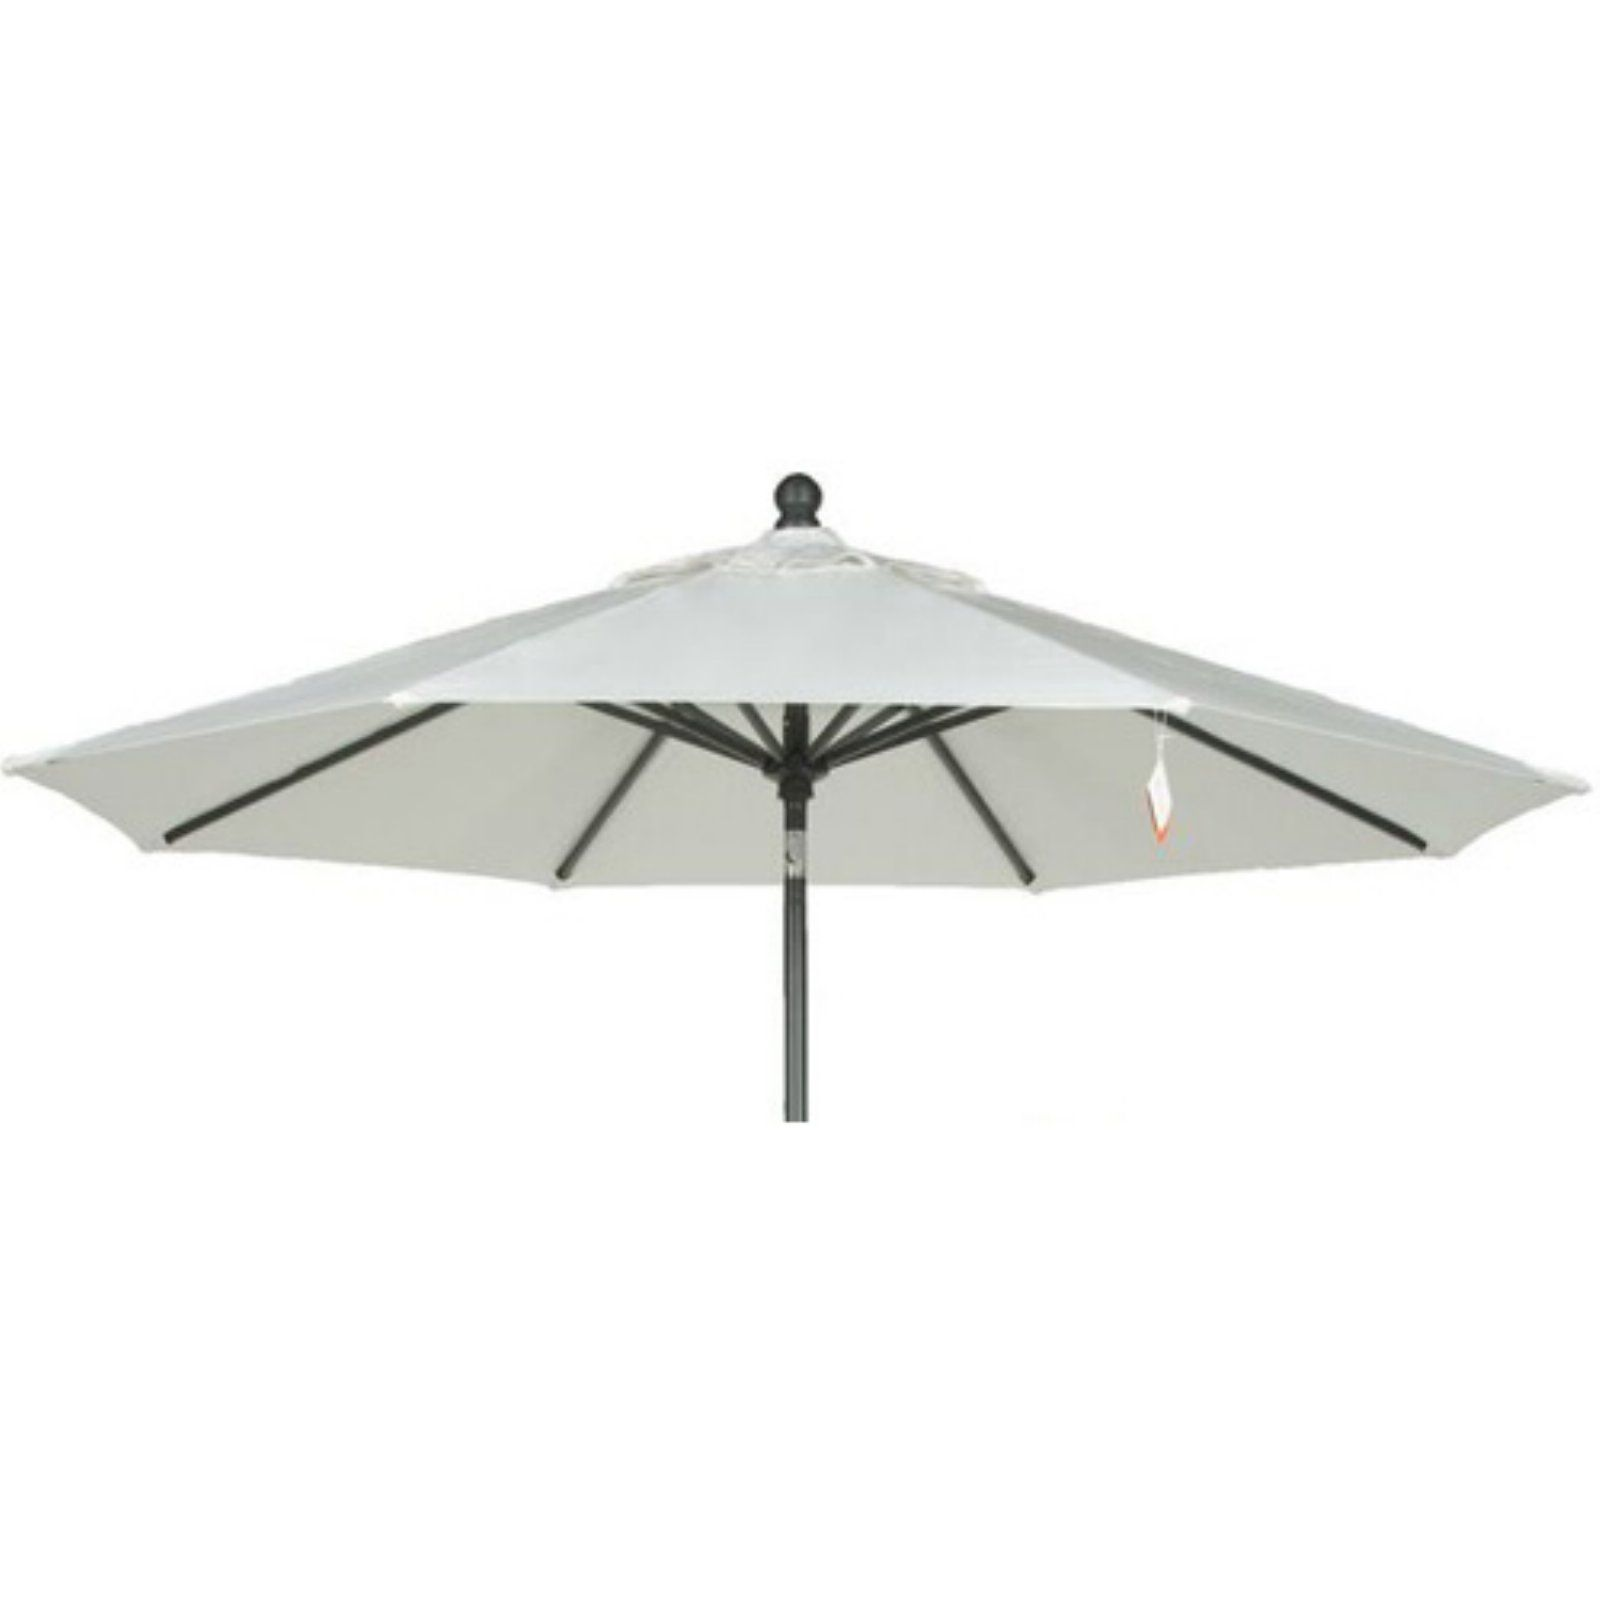 Amauri 9 Ft Sunbrella Market Umbrella Replacement Shade Natural Market Umbrella Patio Color Schemes Umbrella